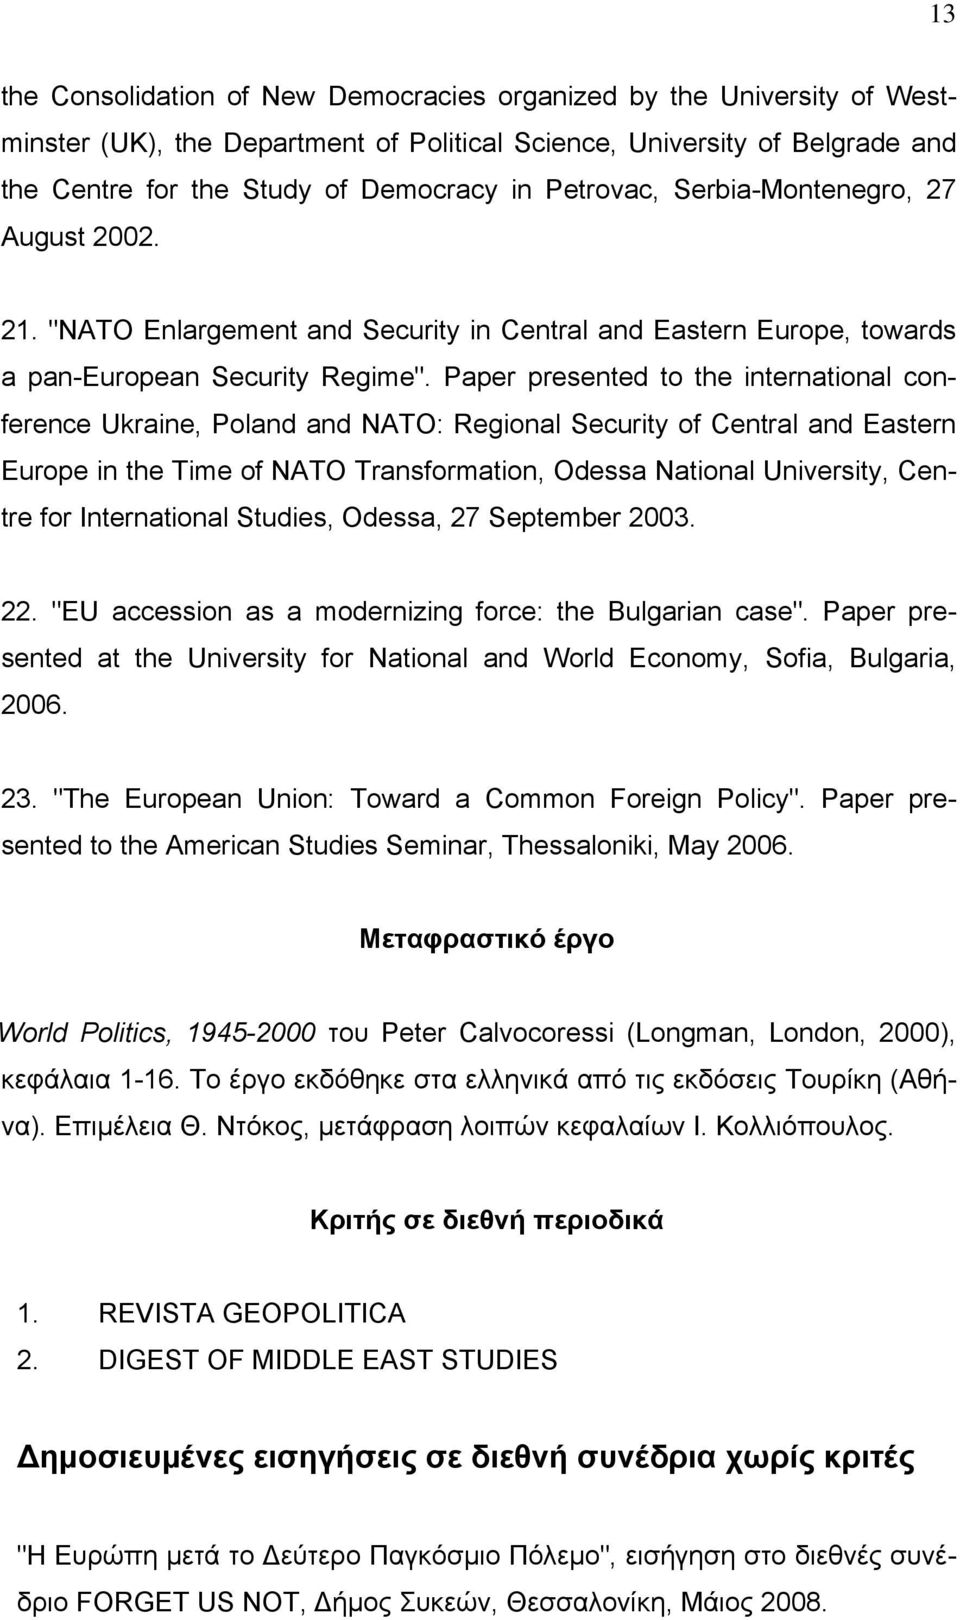 Paper presented to the international conference Ukraine, Poland and NATO: Regional Security of Central and Eastern Europe in the Time of NATO Transformation, Odessa National University, Centre for